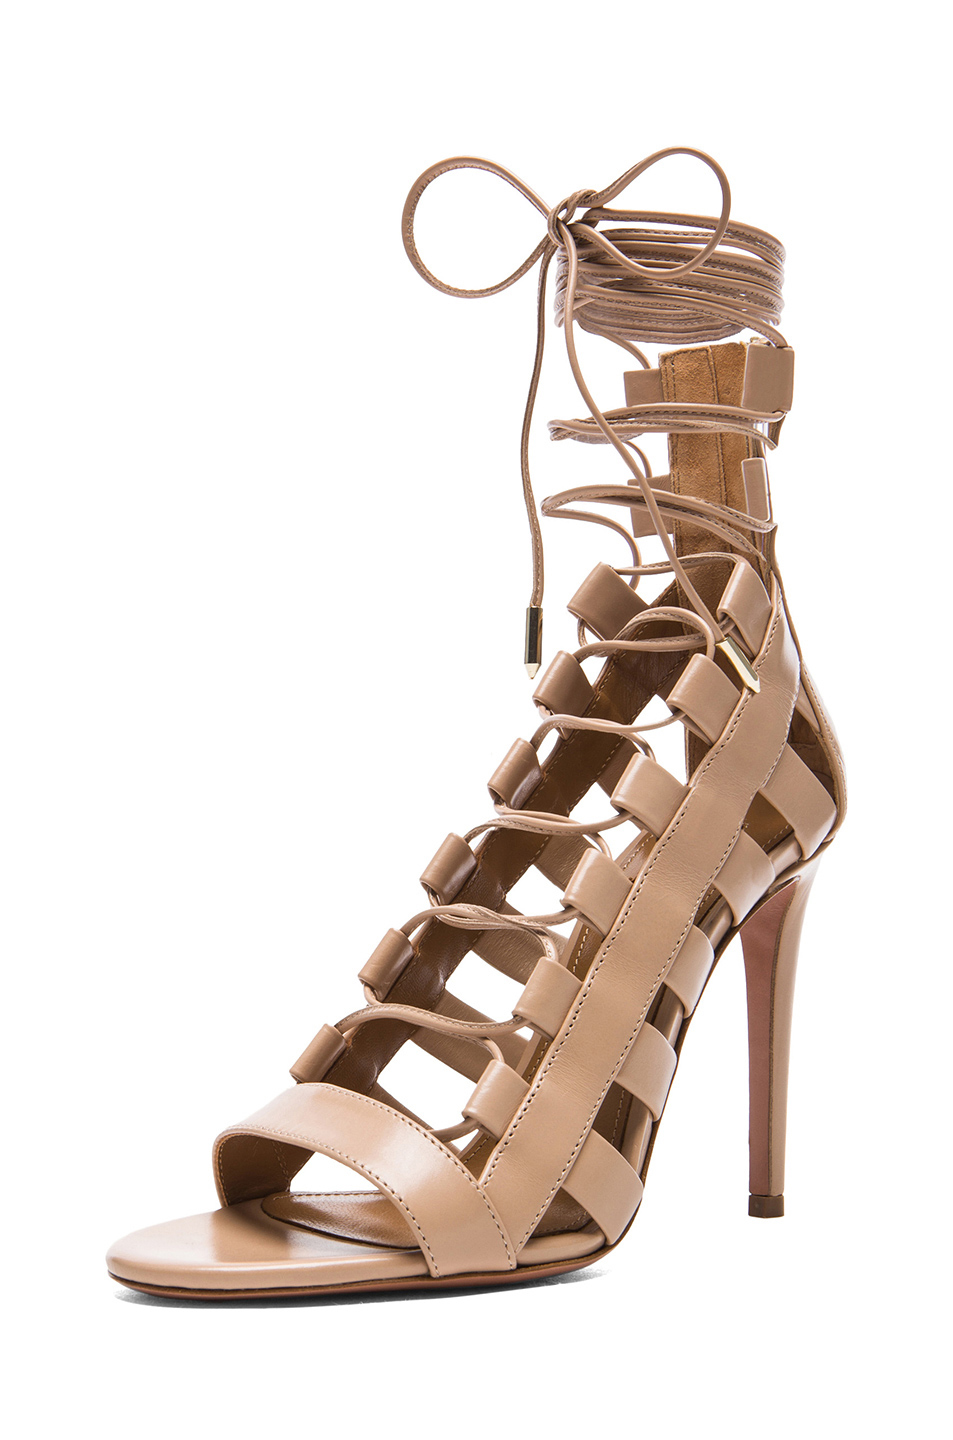 7773ed5ee9e Aquazzura Amazon Leather Heels in Nude